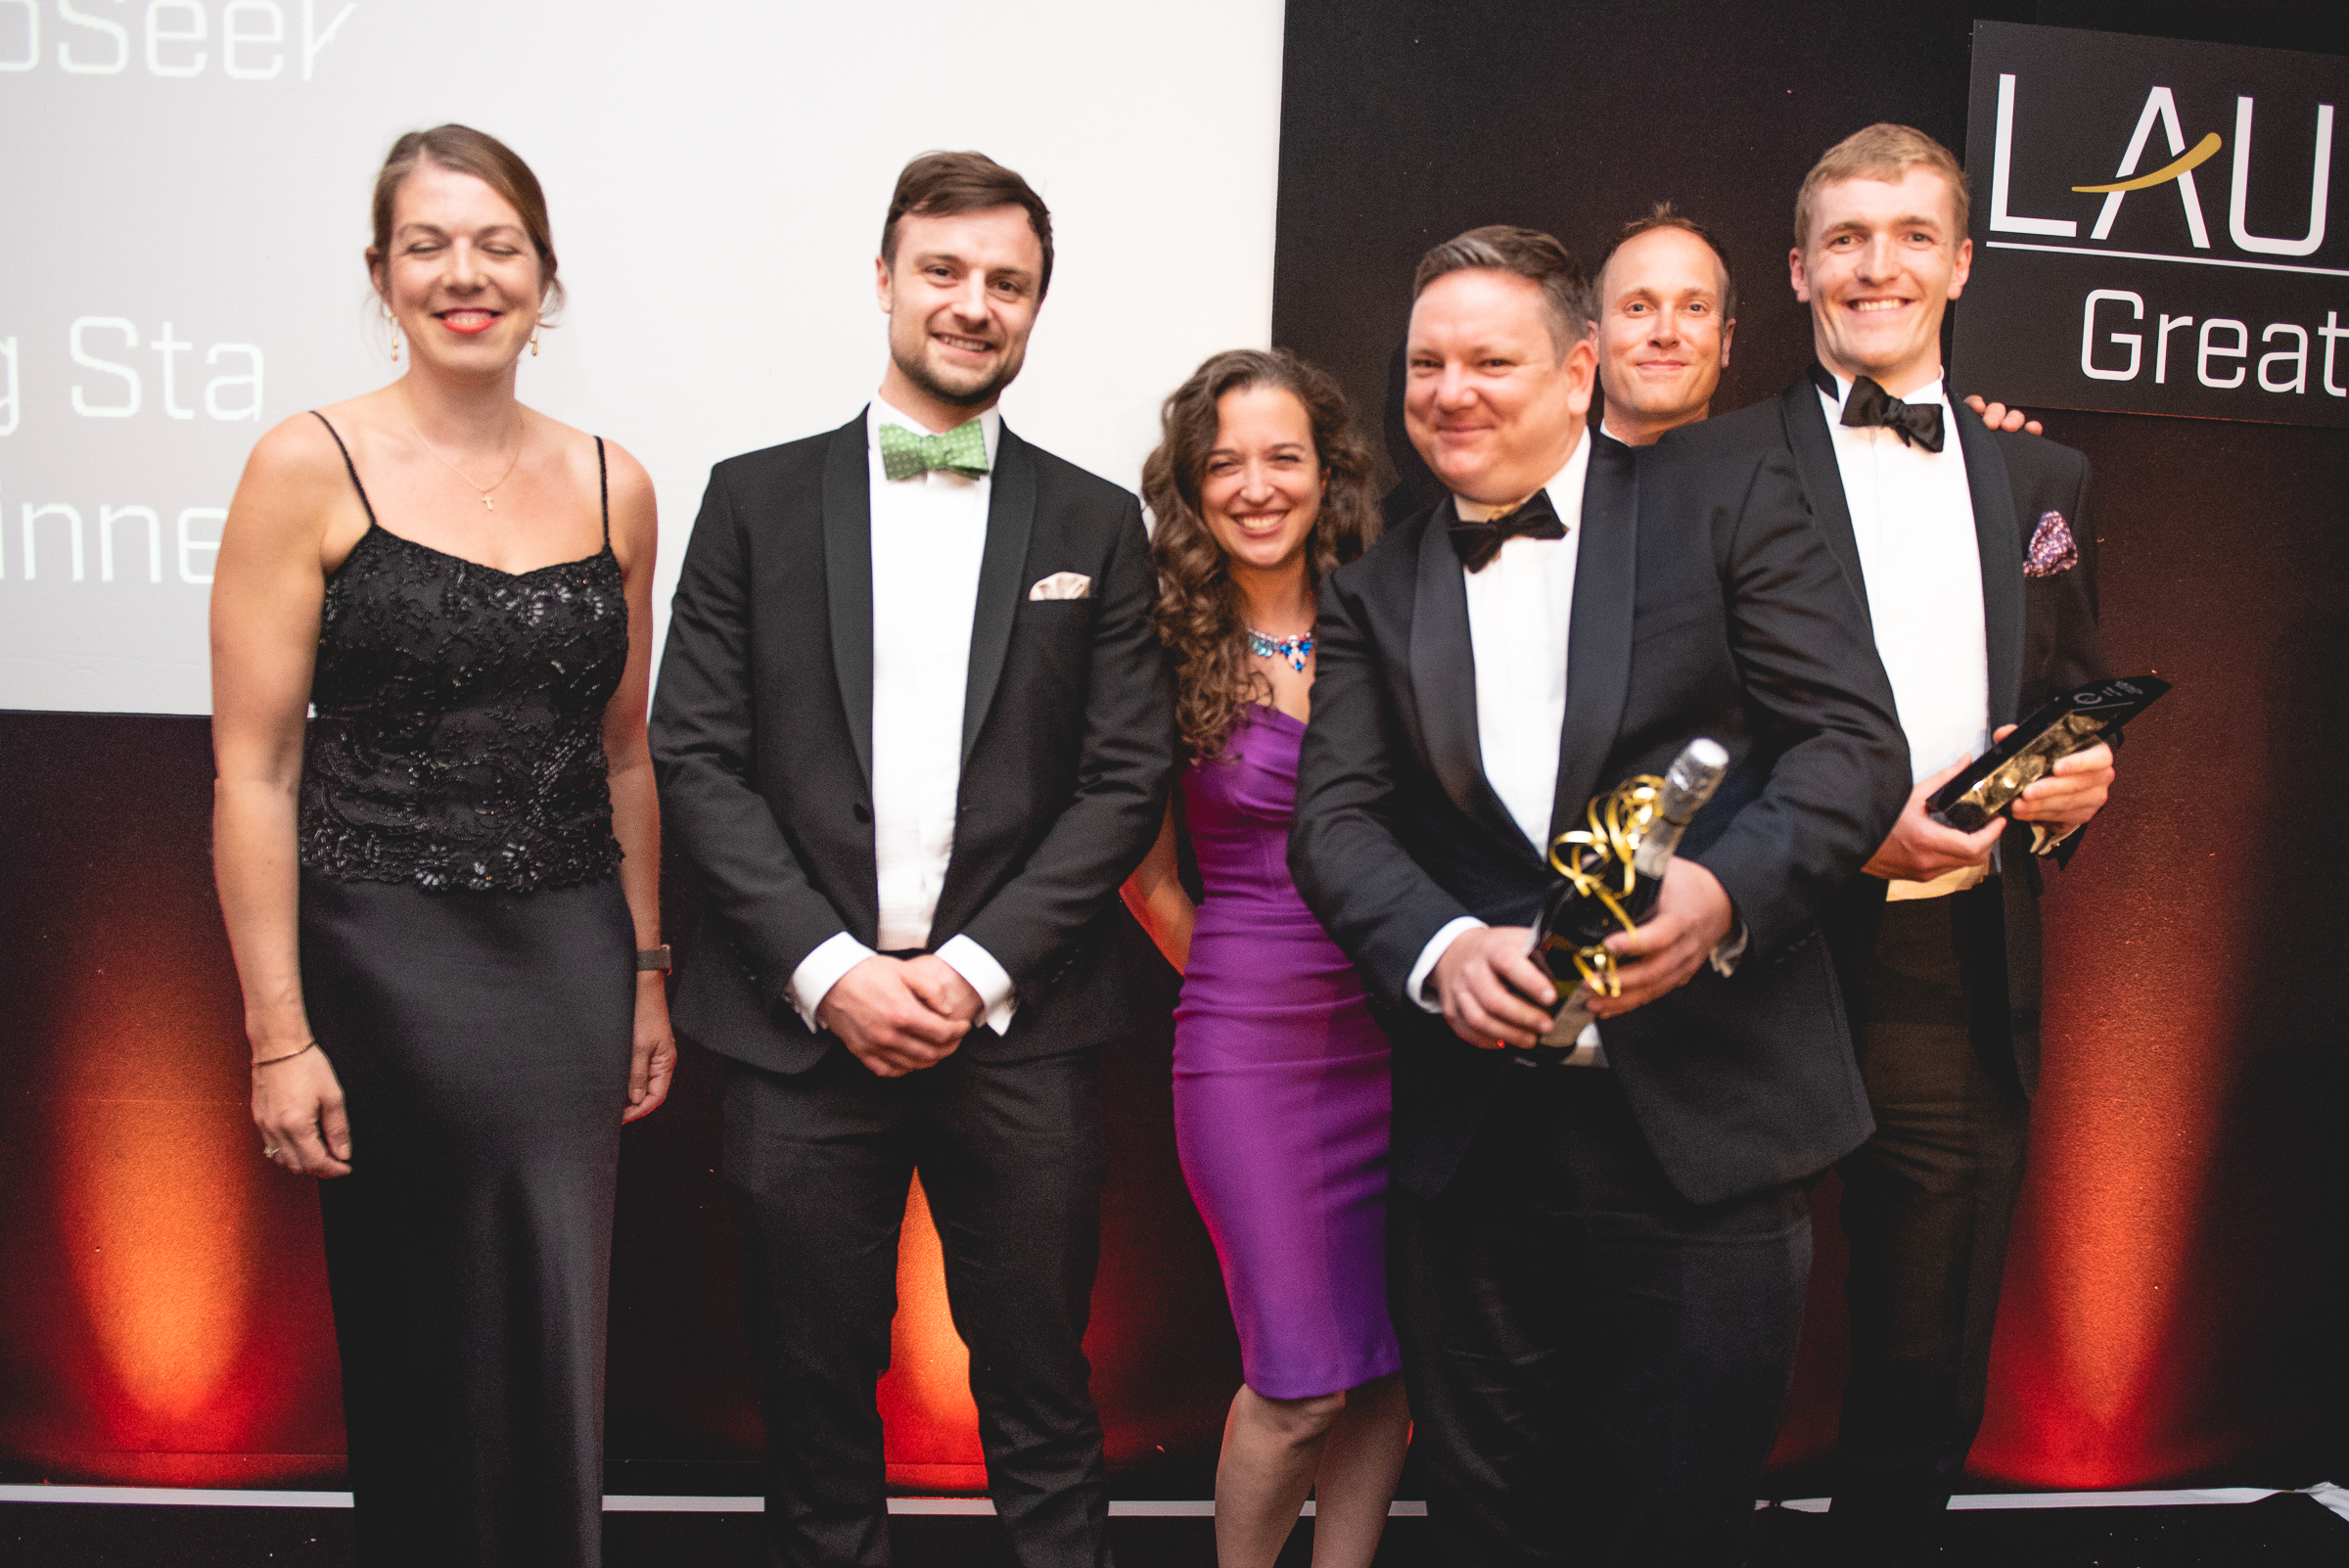 CytoSeek Team, winners of the Rising Star Award, sponsored by University of Bristol and SETsquared Bristol  L to R: Lucinda Parr, Dr Tom Green, Dr Emily Grossman, Dr Adam Perriman, Dr Ben Carter